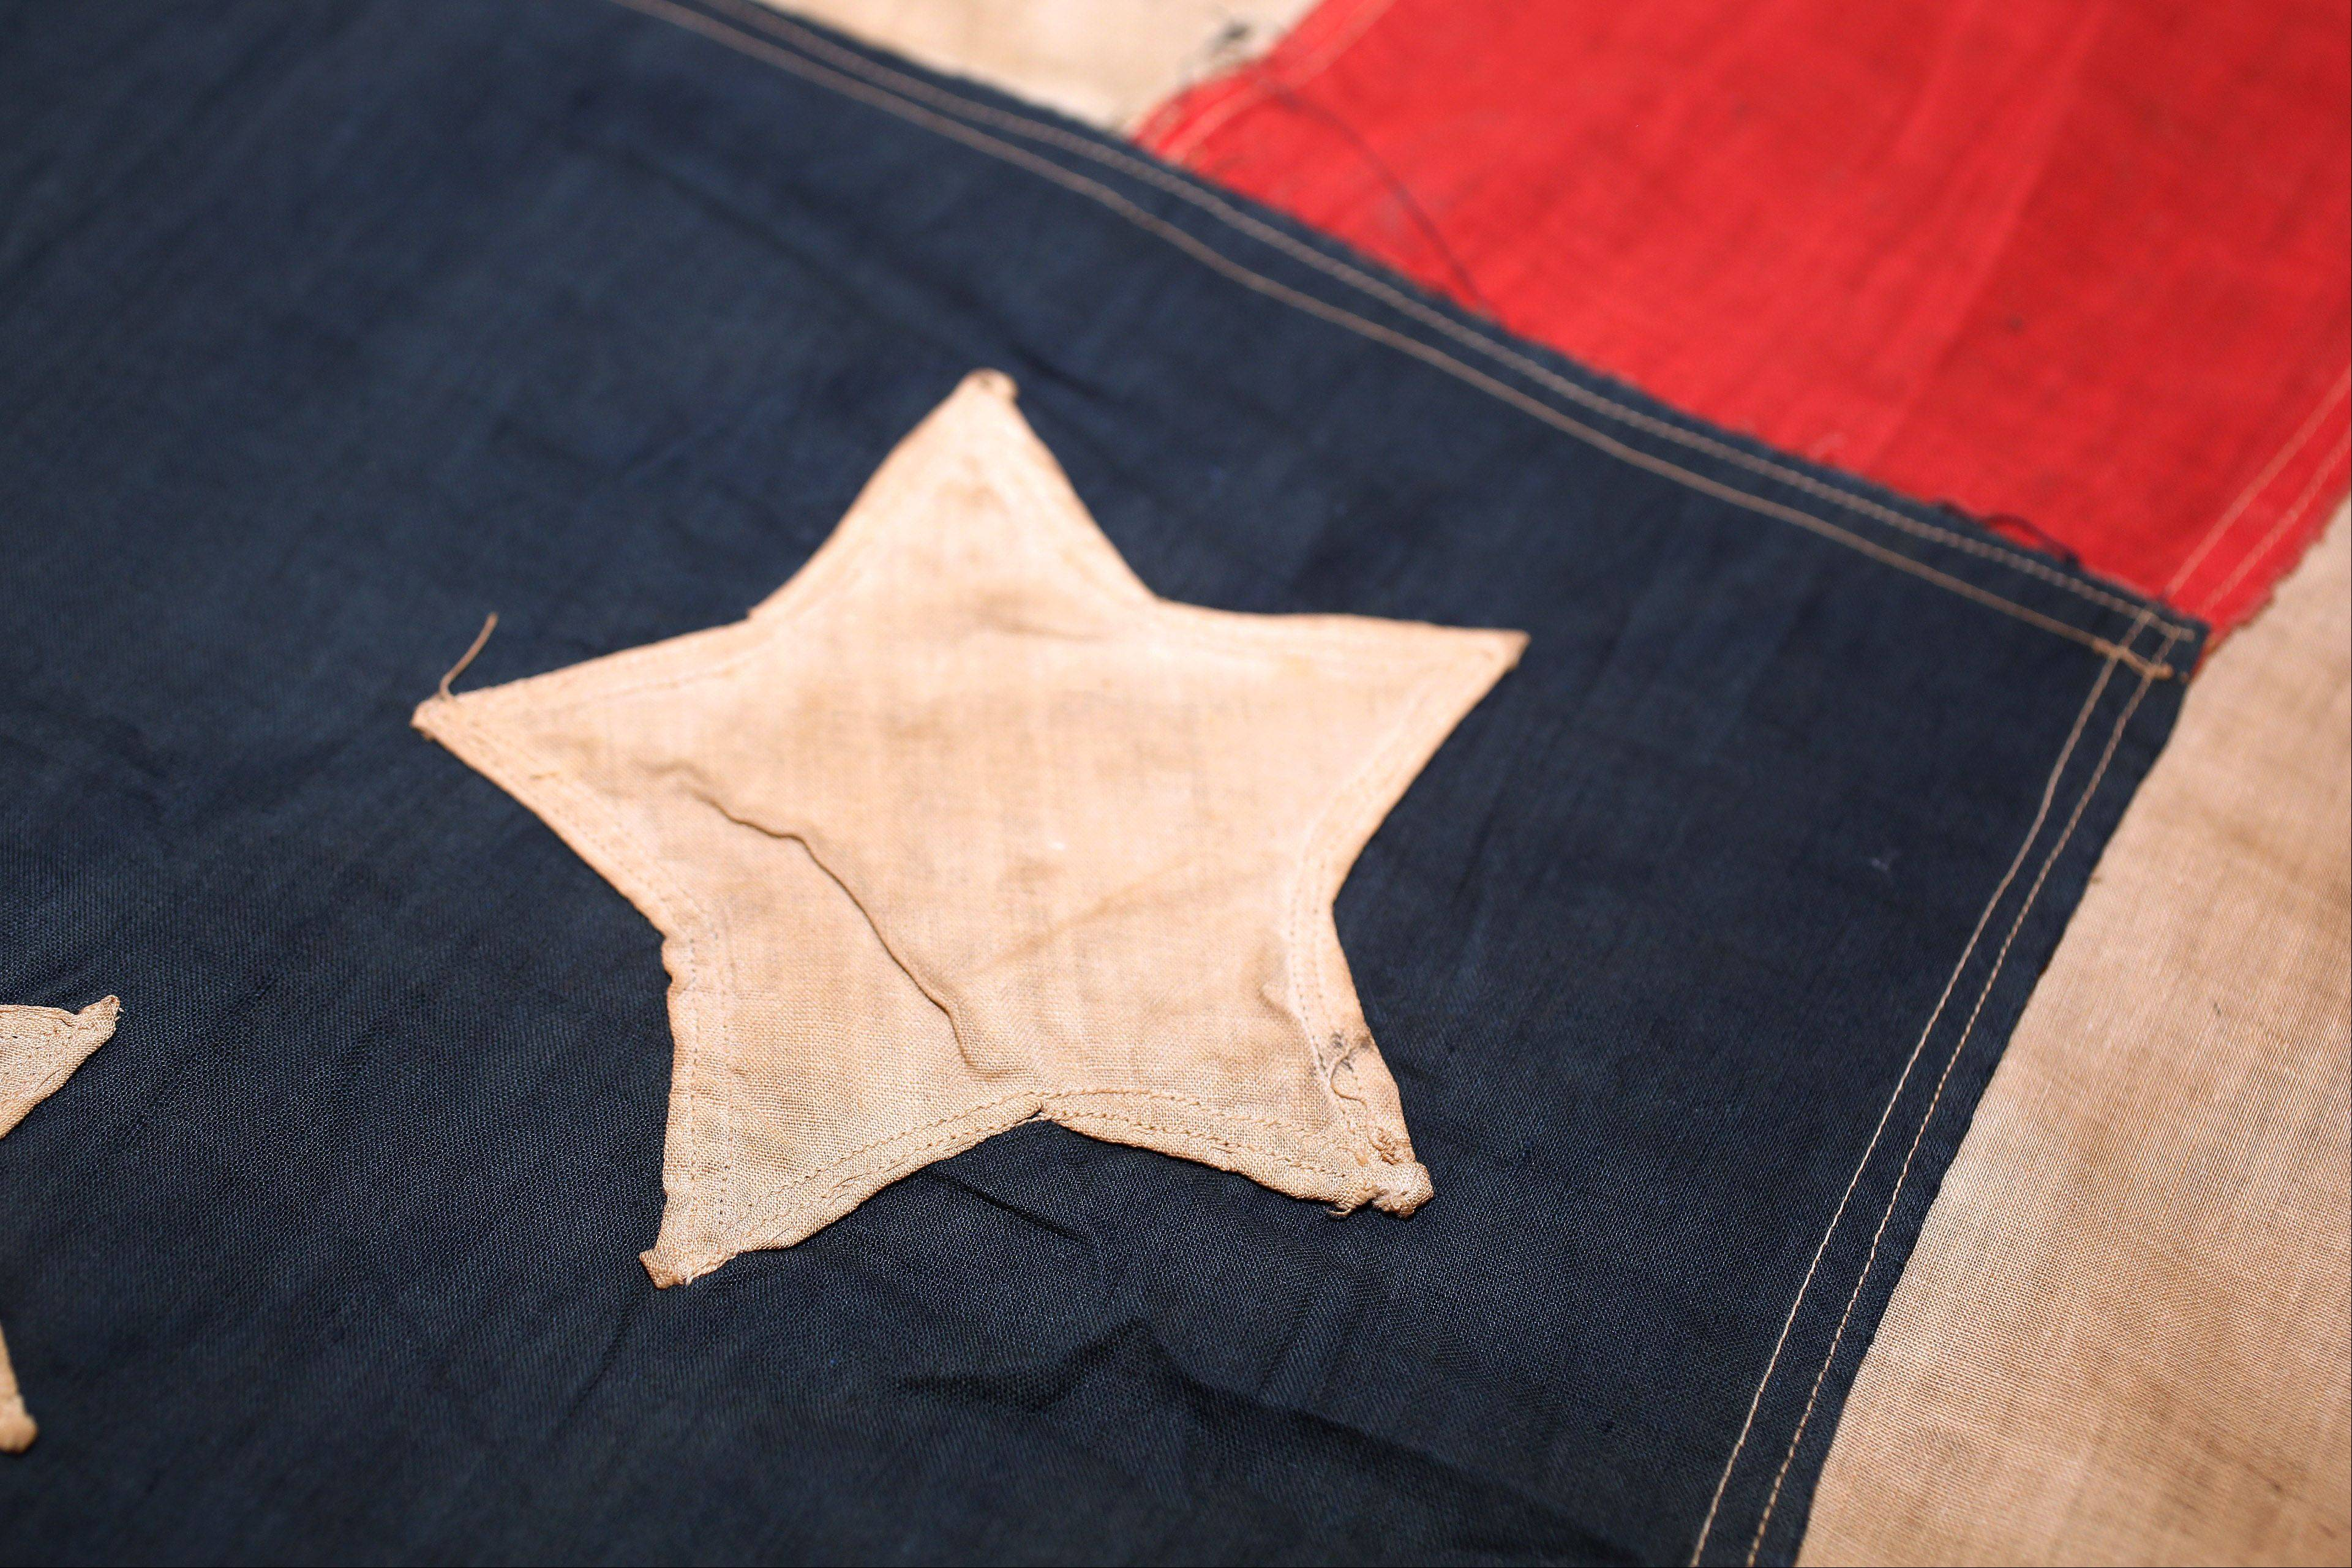 A section of a Civil War flag set up for viewing Wednesday at the Lake County Discovery Museum near Wauconda. The flag was donated by descendants of Civil War veteran Edward Murray after it was found hidden in a shoe box. On July 13 and 14, the Lakewood Forest Preserve will be hosting its annual Civil War Days encampment.